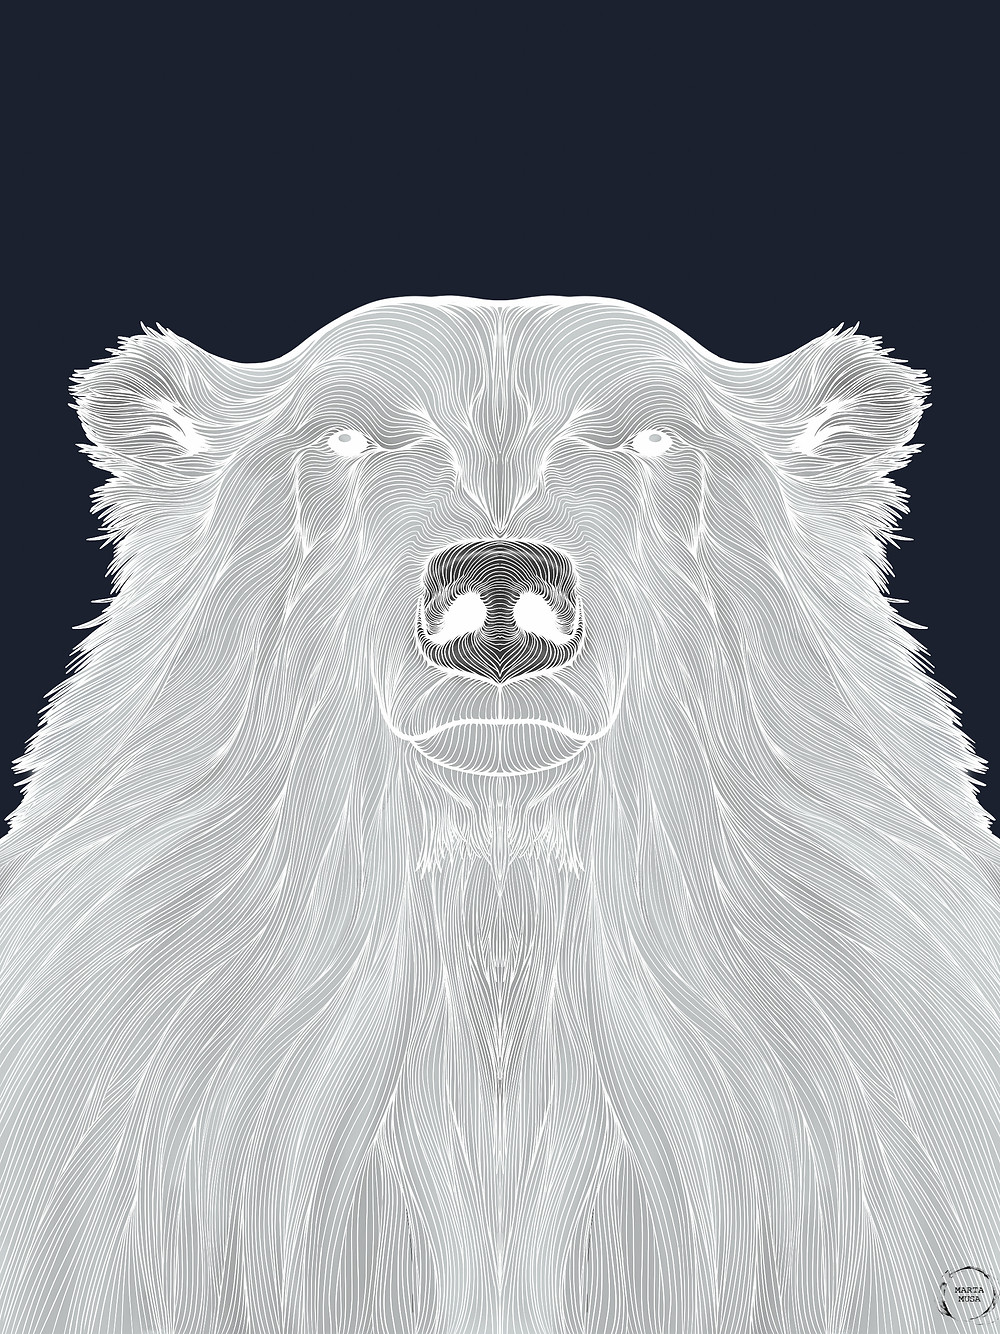 Contour line drawing of a polar bear against a dark blue background.  The contour lines are in a bright wihte against a body of light and dark grey.  The polar bears face and neck are included in the portrait